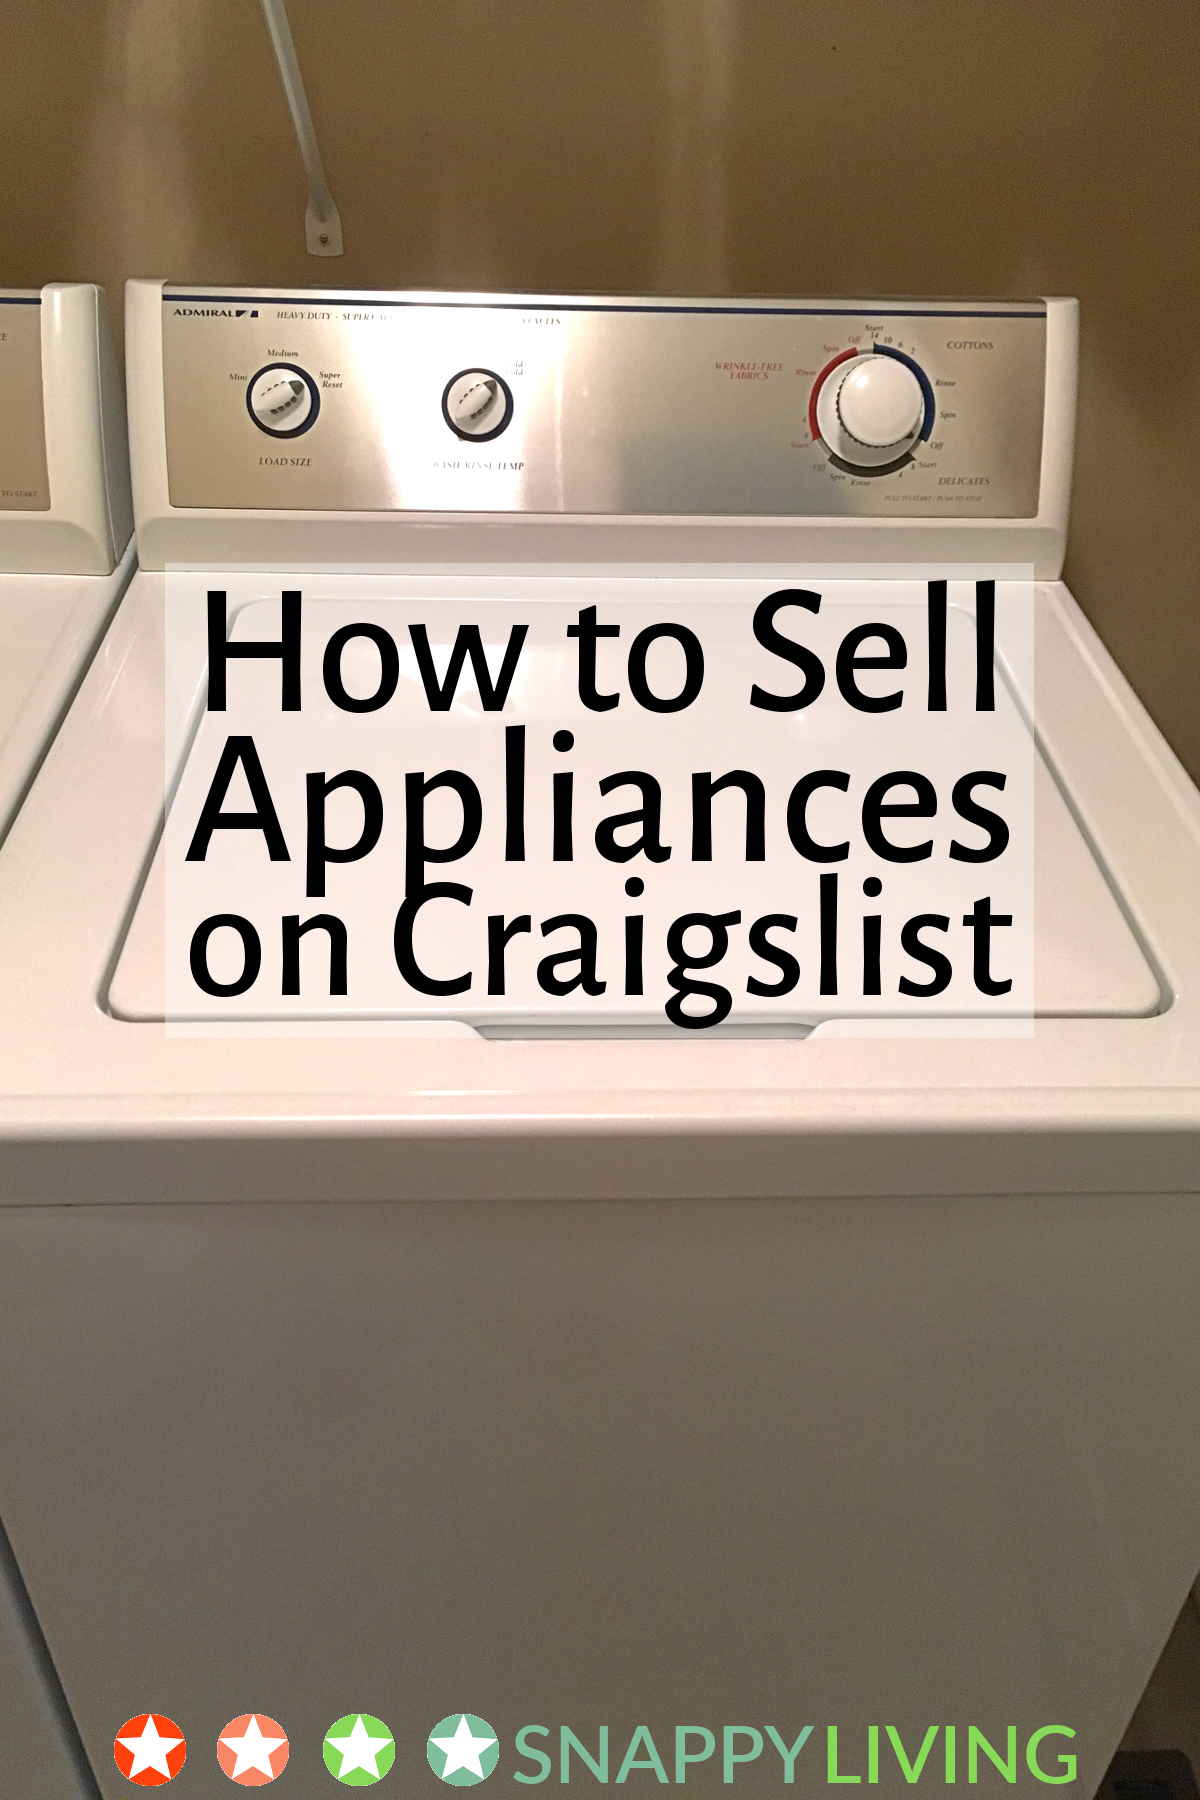 Craigslist applicance for sale page open on a computer monitor